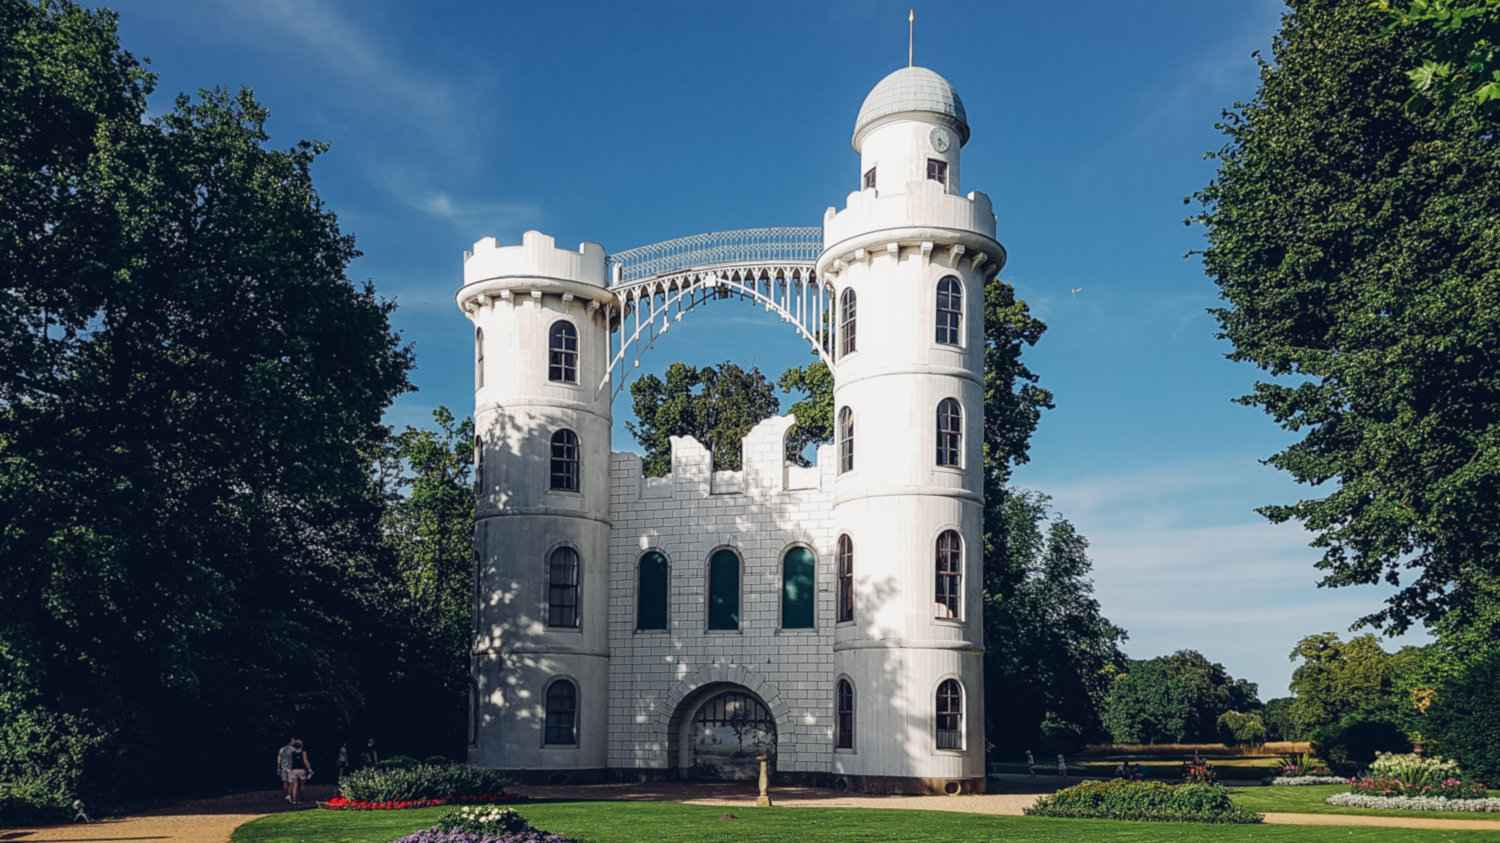 The Pfaueninsel island and castle is a romantic spot for a picnic in Berlin